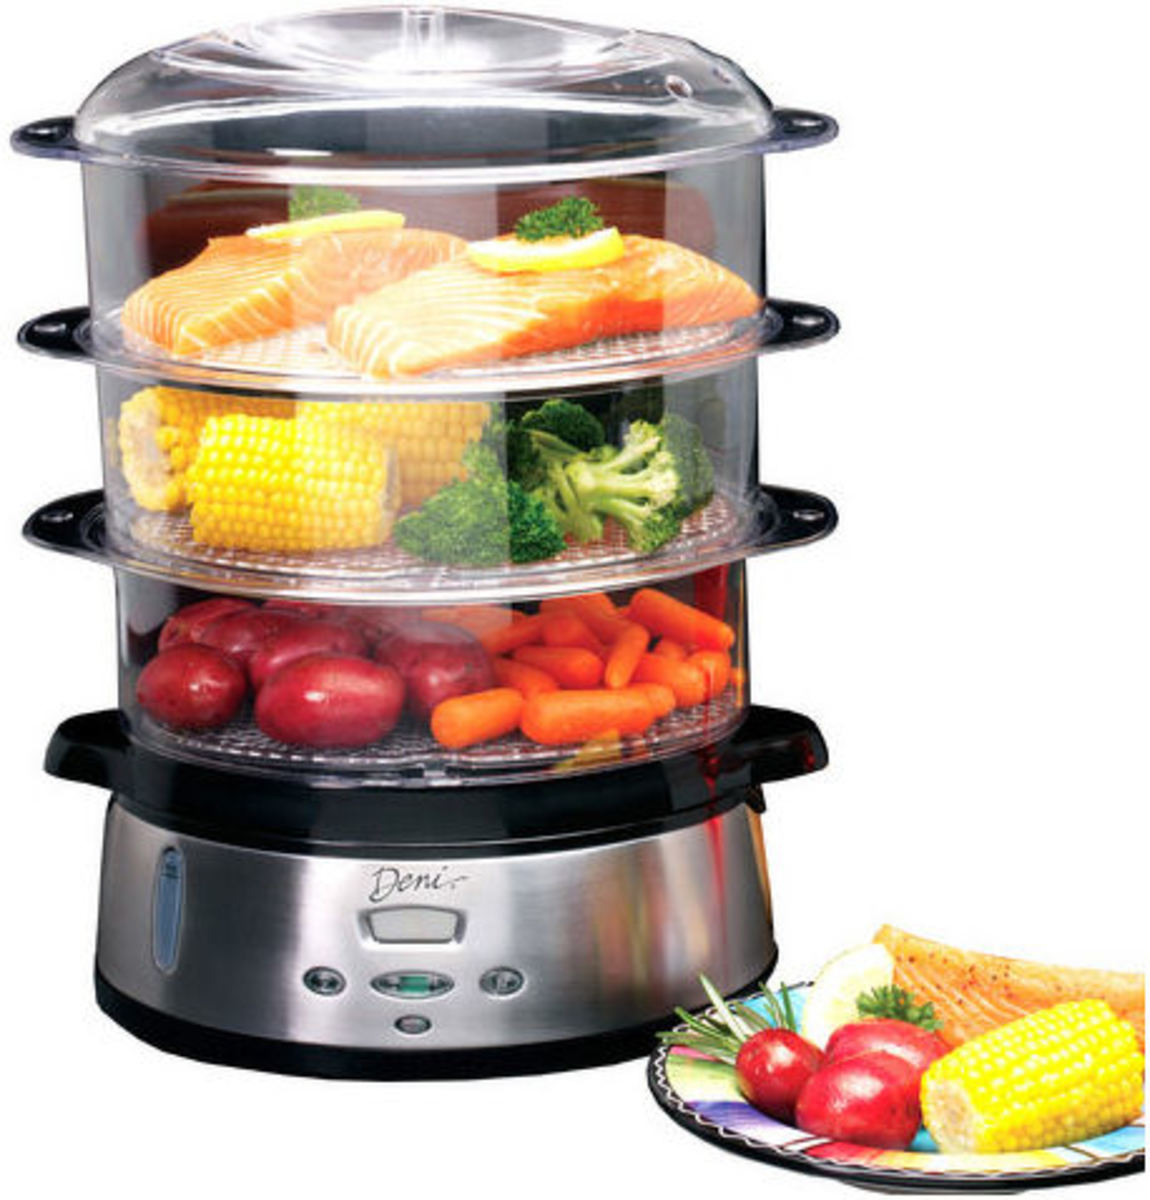 Why Buy an Electric Vegetable Steamer for your Food?